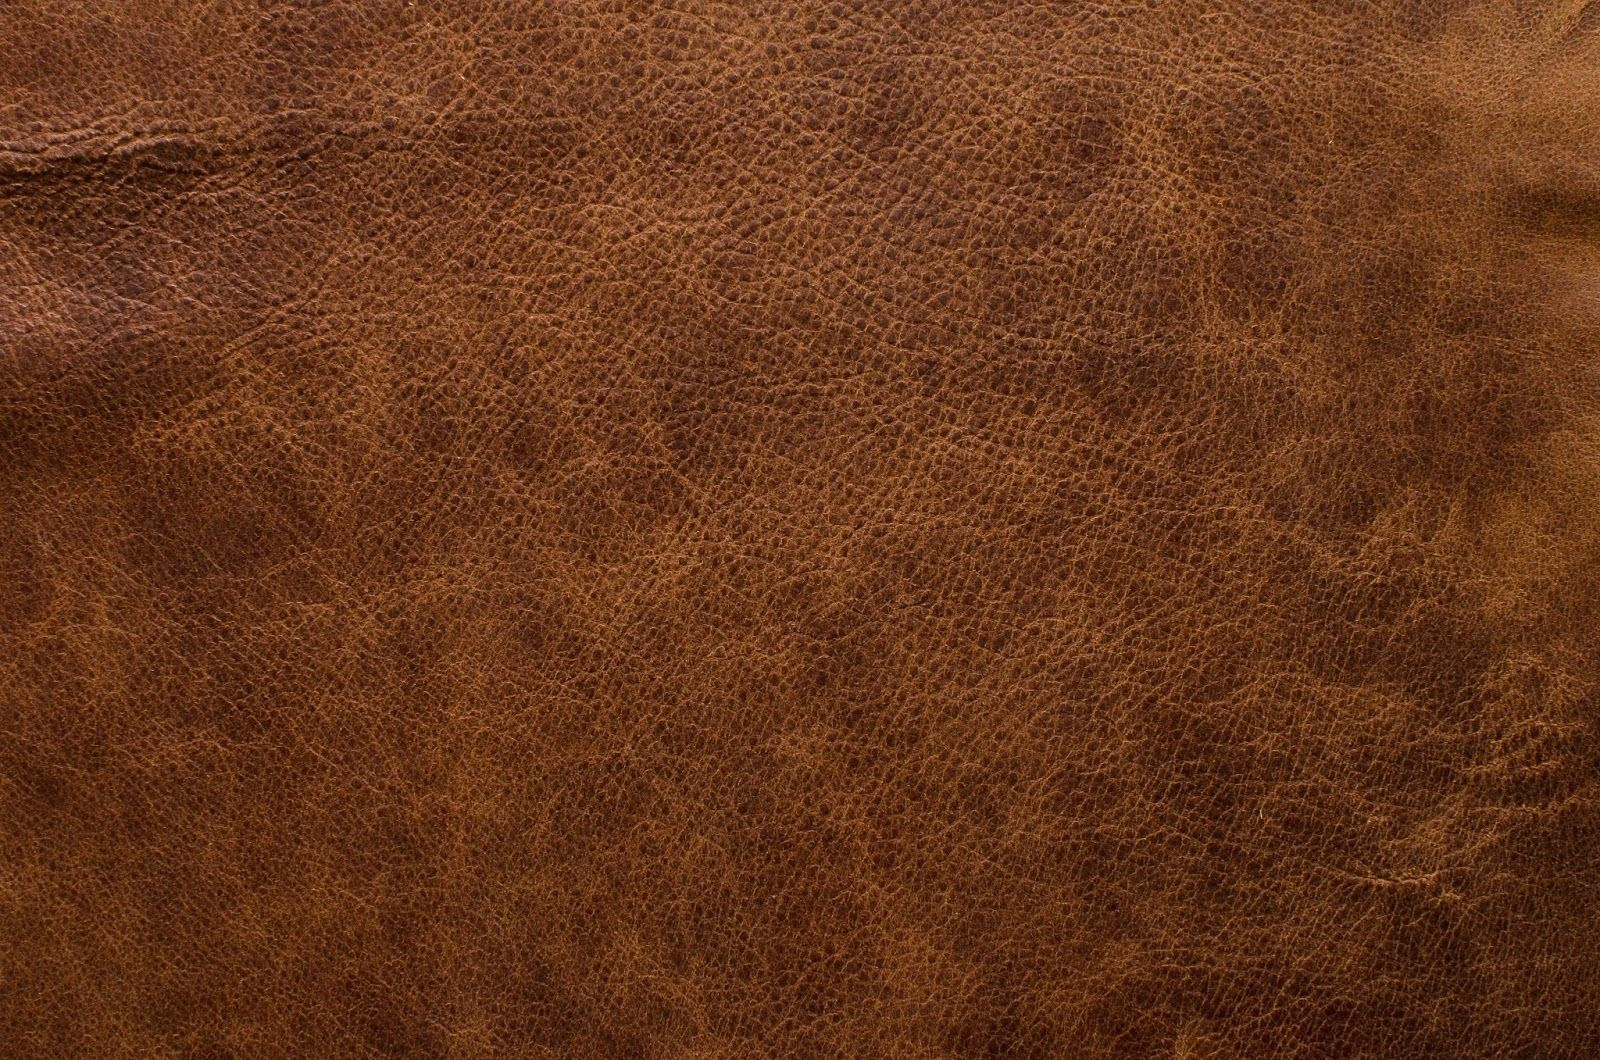 Texture Texture Seamless Ui Material Forward Worn Leather Texture